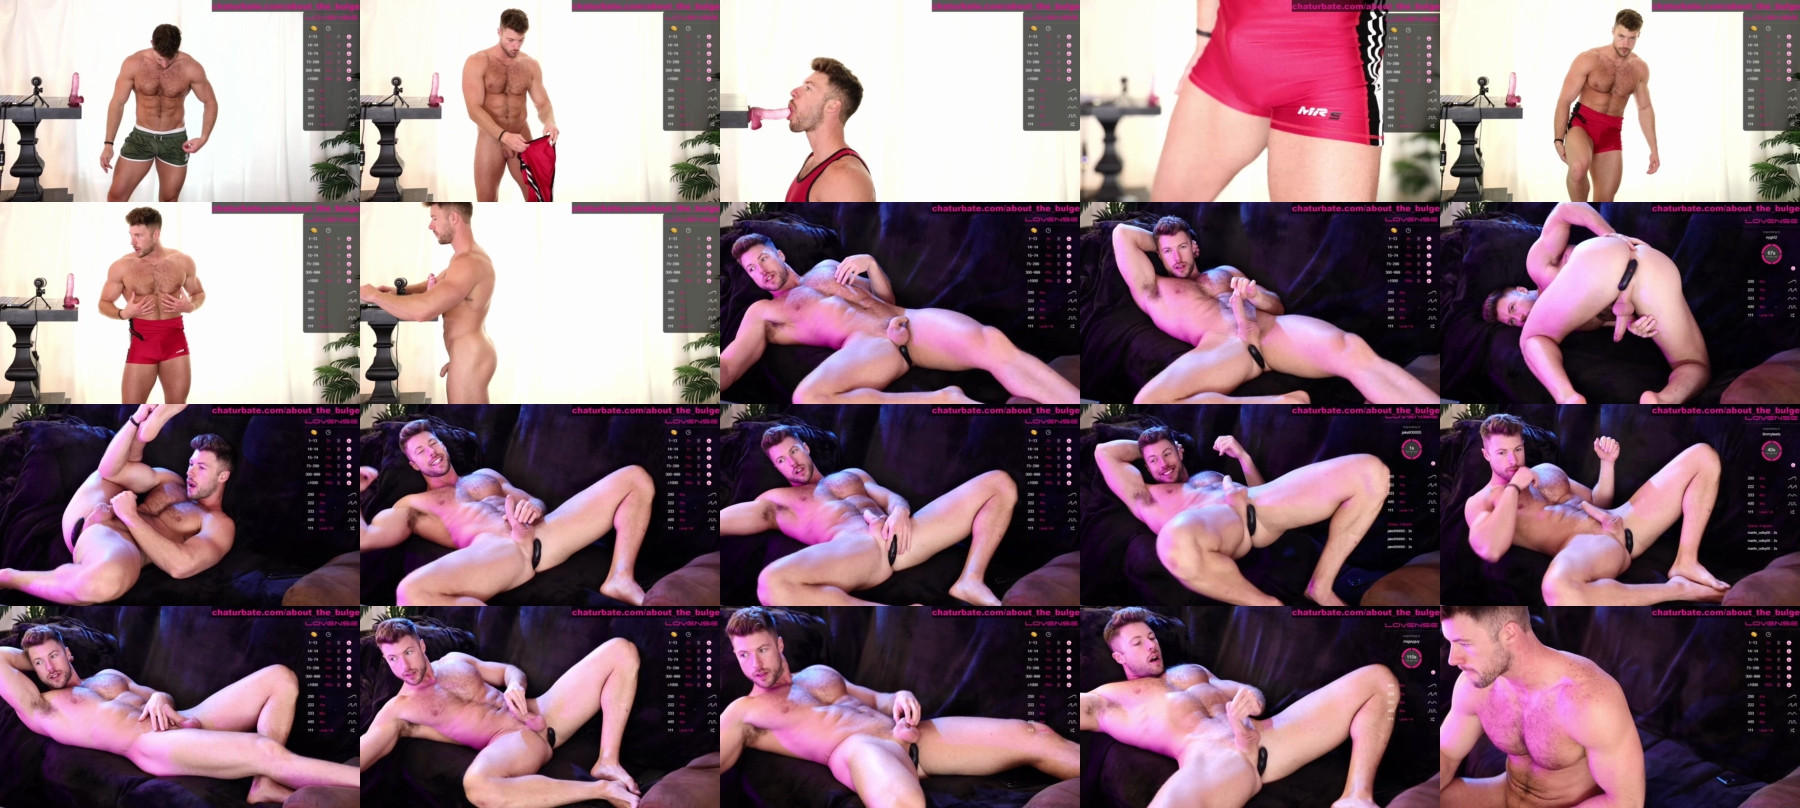 About_The_Bulge Ass CAM SHOW @ Chaturbate 10-05-2021